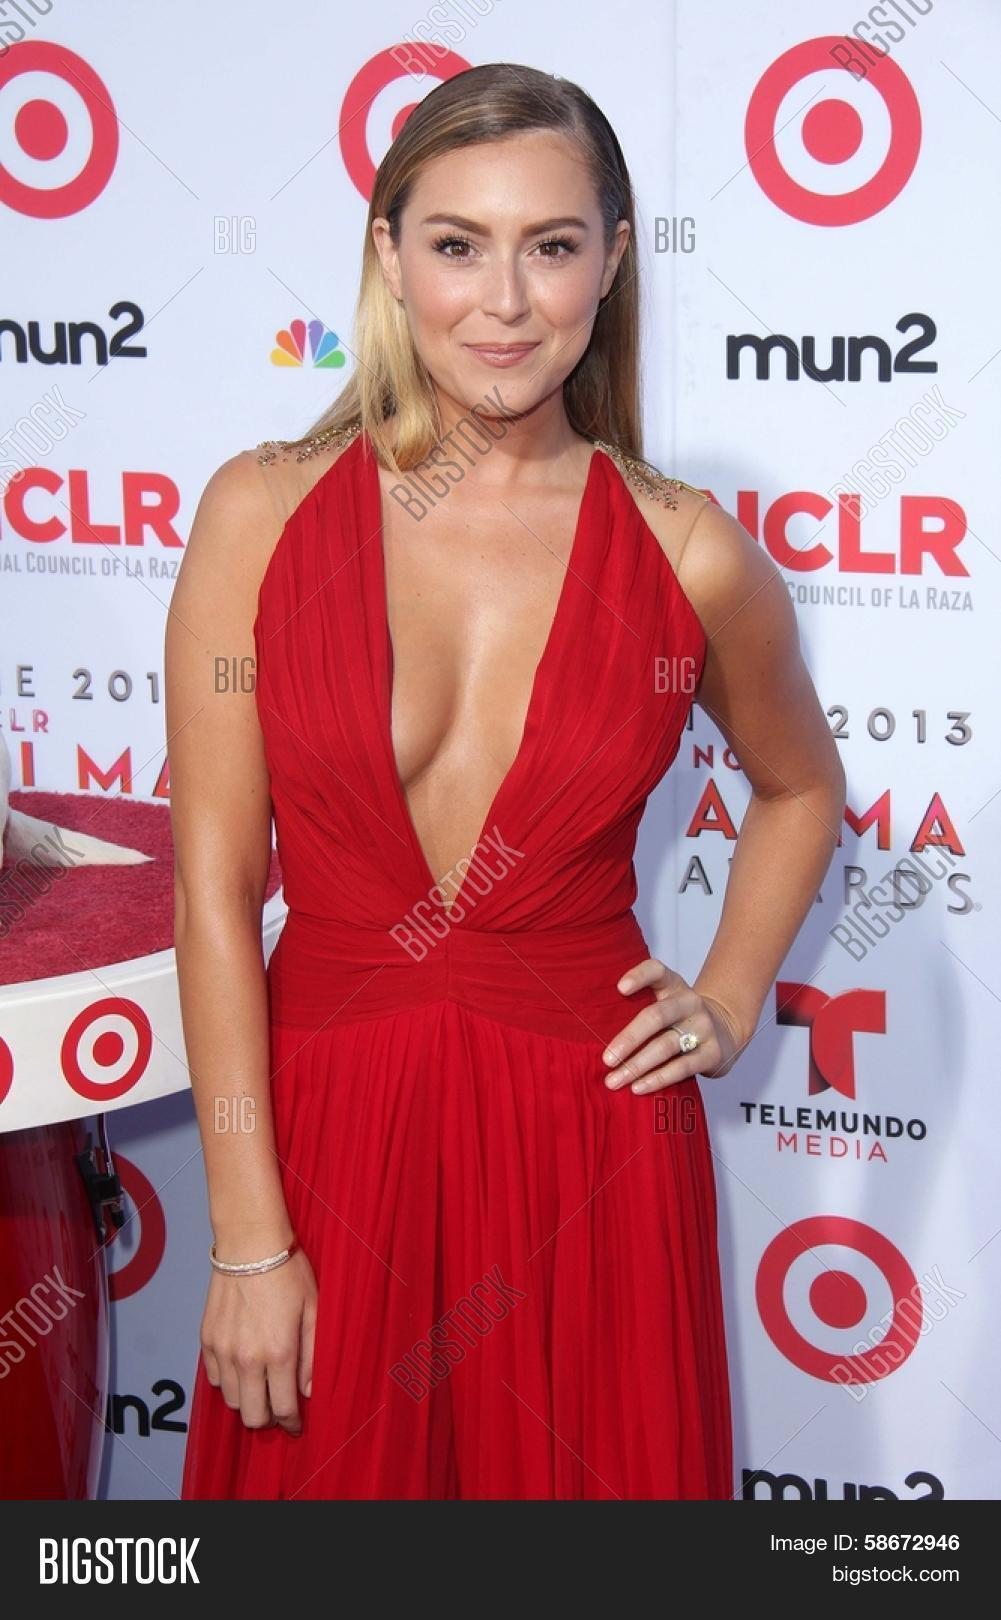 All above alexa vega cleavage apologise, but